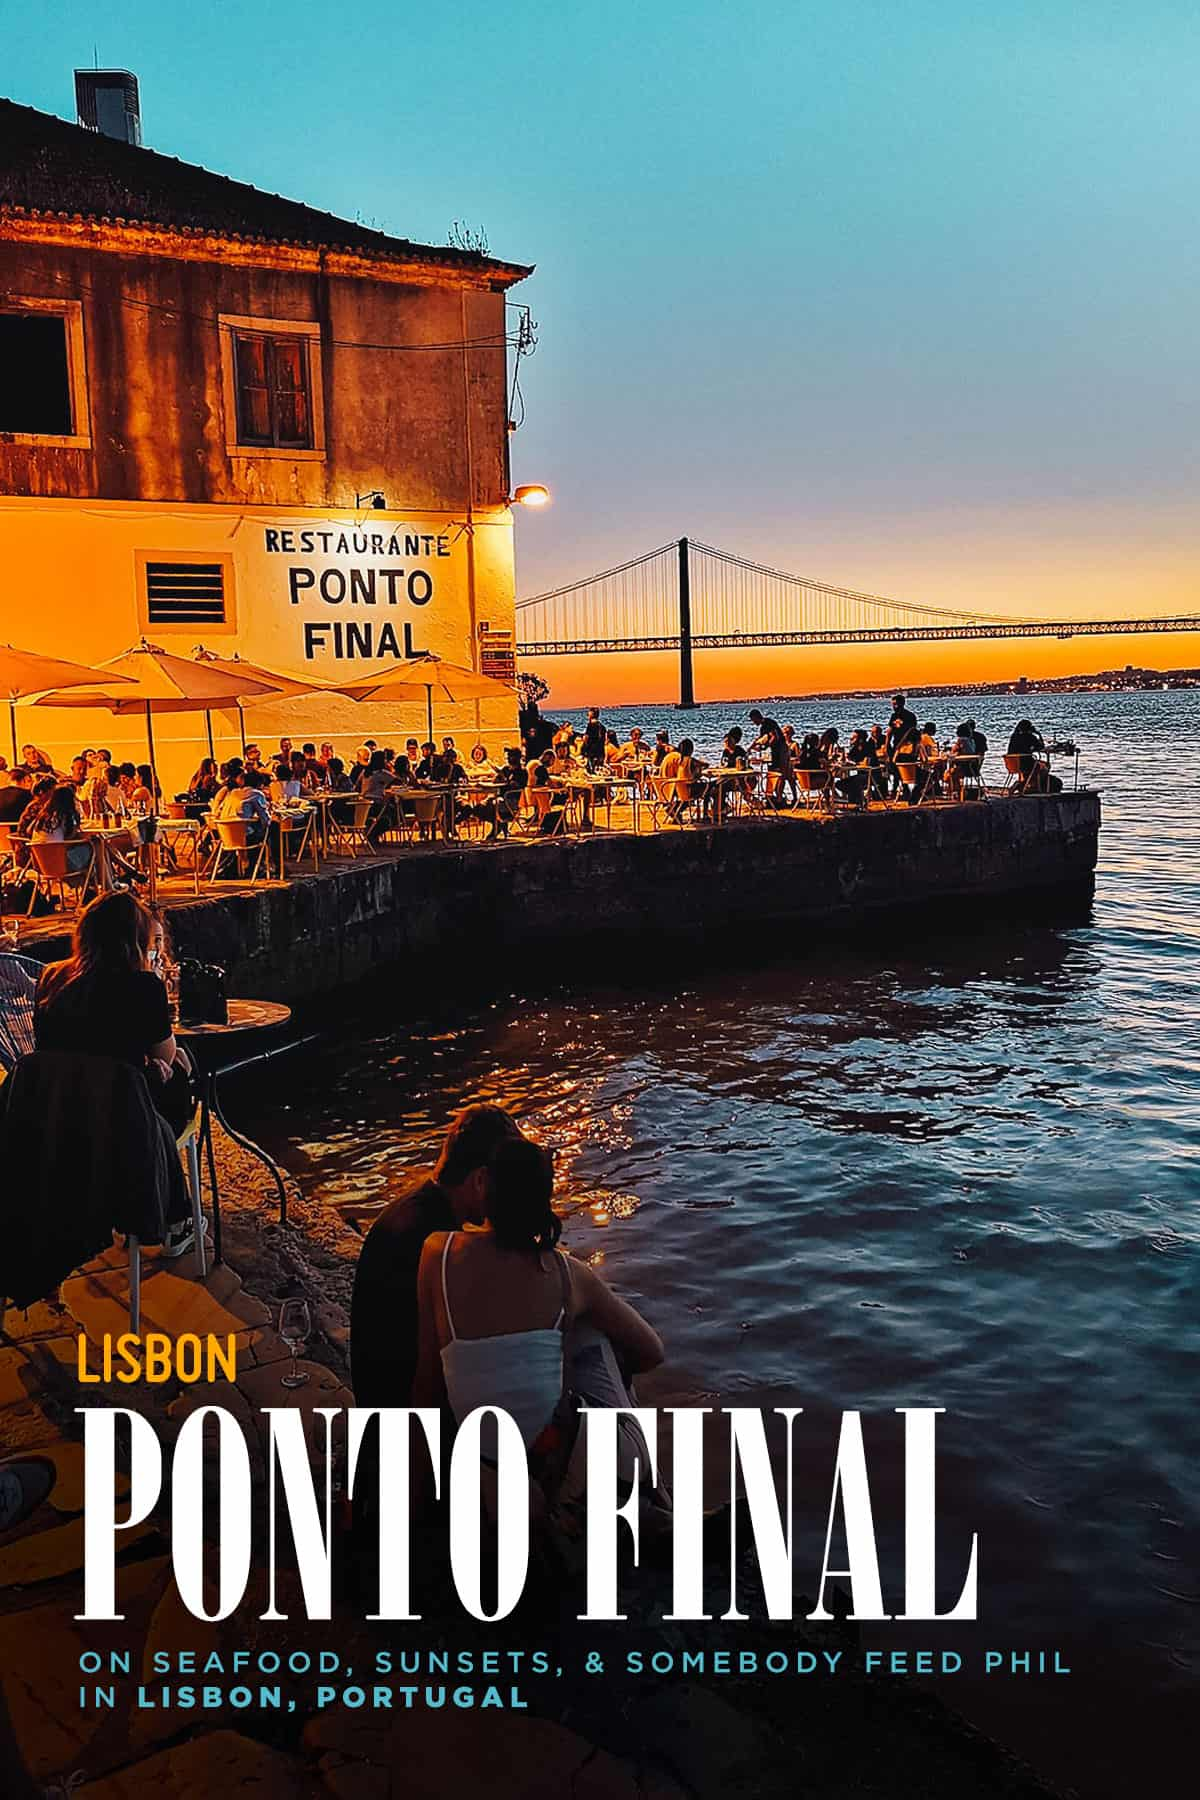 Ponto Final restaurant in Lisbon, Portugal